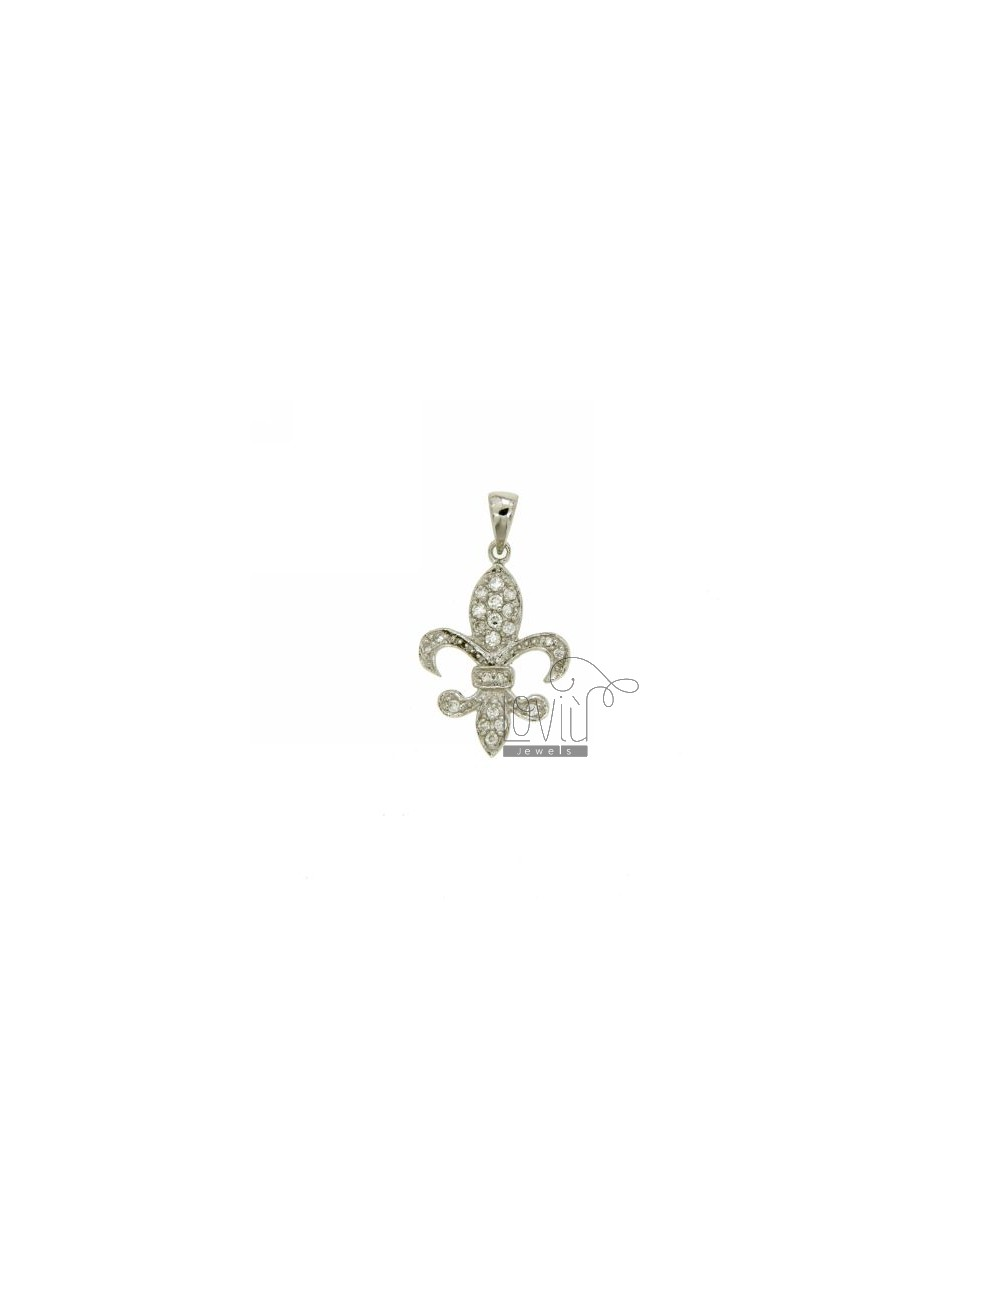 PENDANT LILY FLORENCE 22X0 MM IN AG TIT 925% ‰ E ZIRCONS